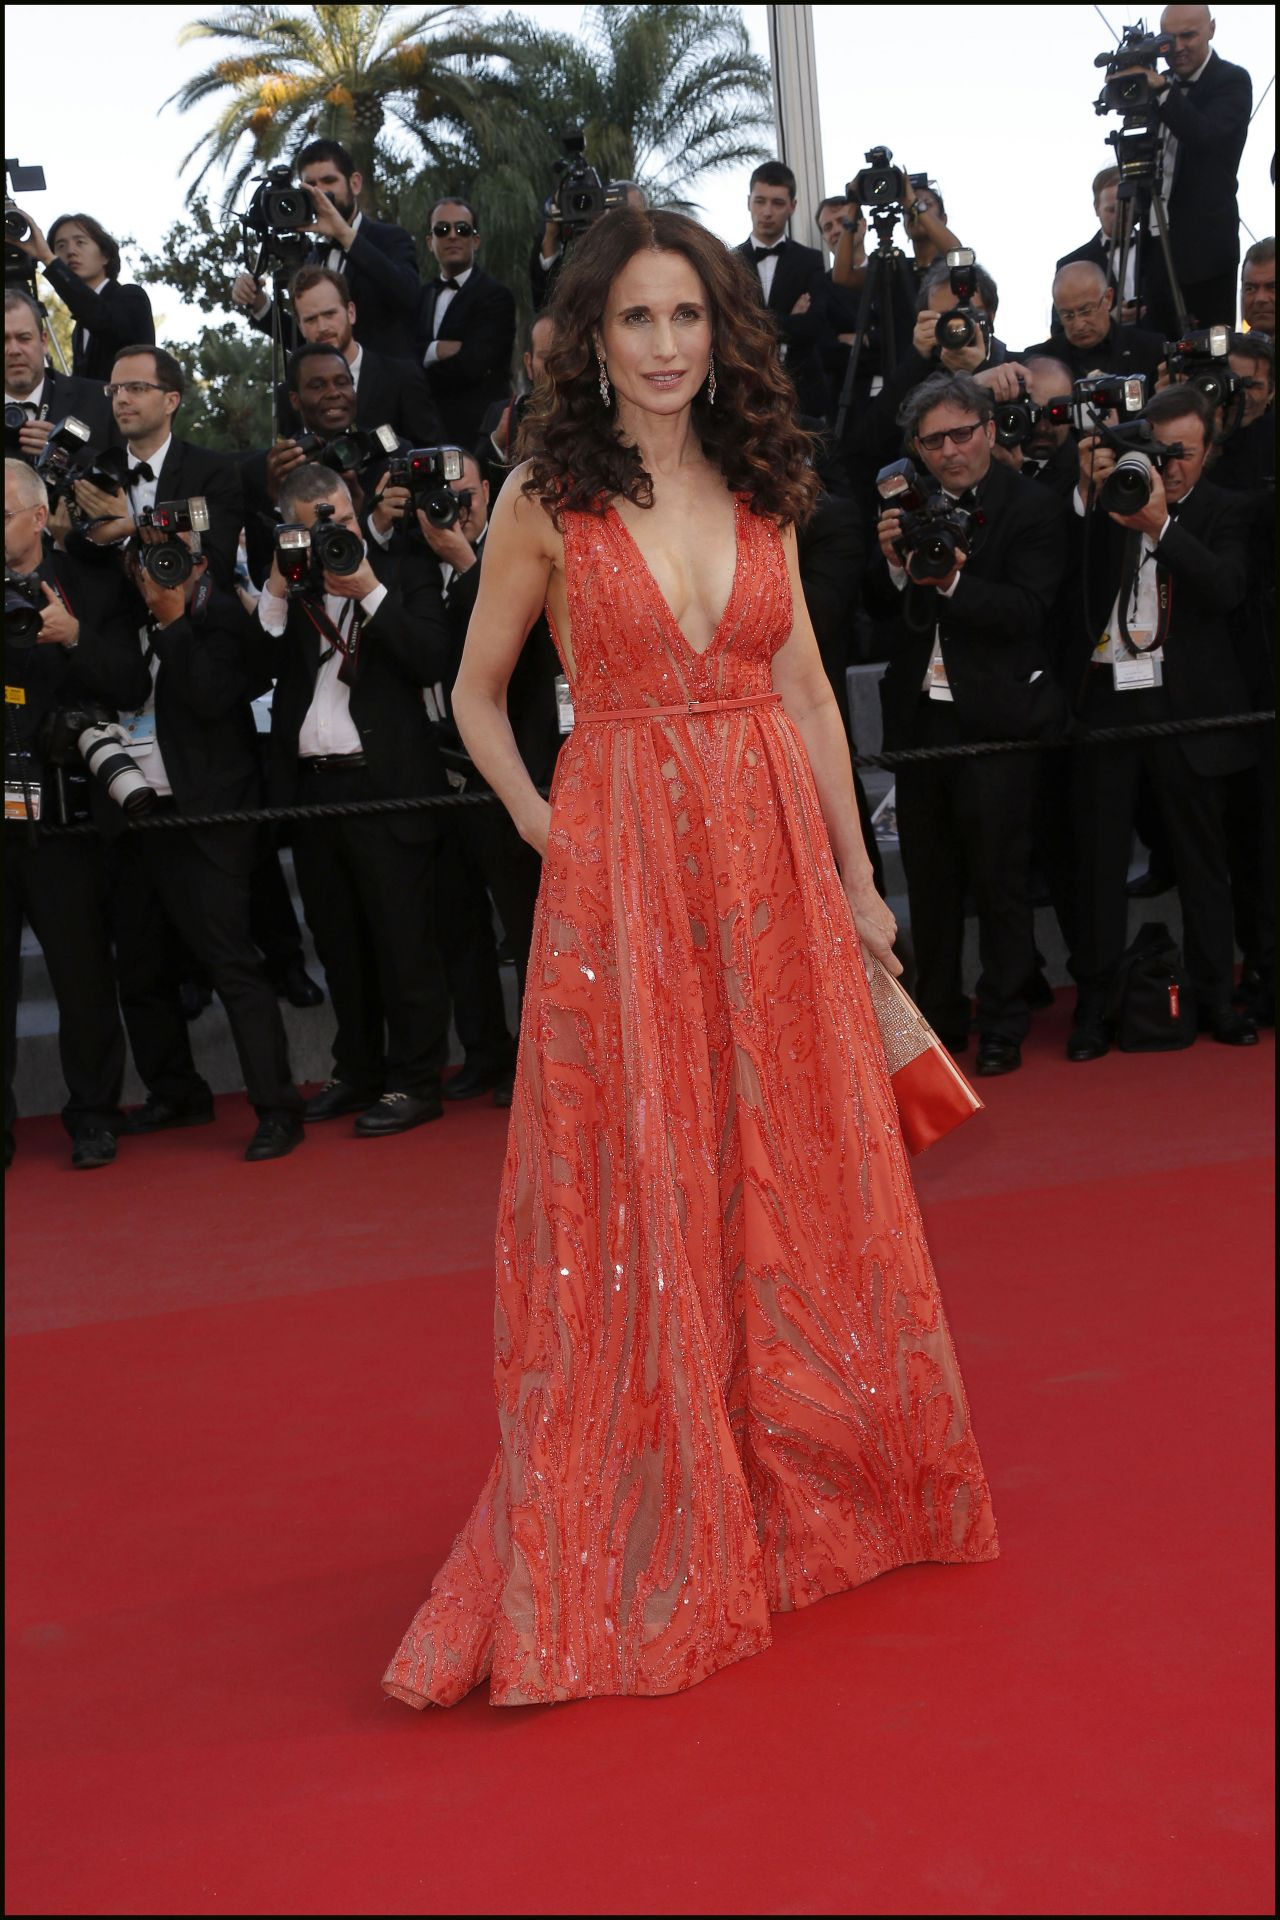 andie macdowell inside out premiere 2015 cannes film festival. Black Bedroom Furniture Sets. Home Design Ideas